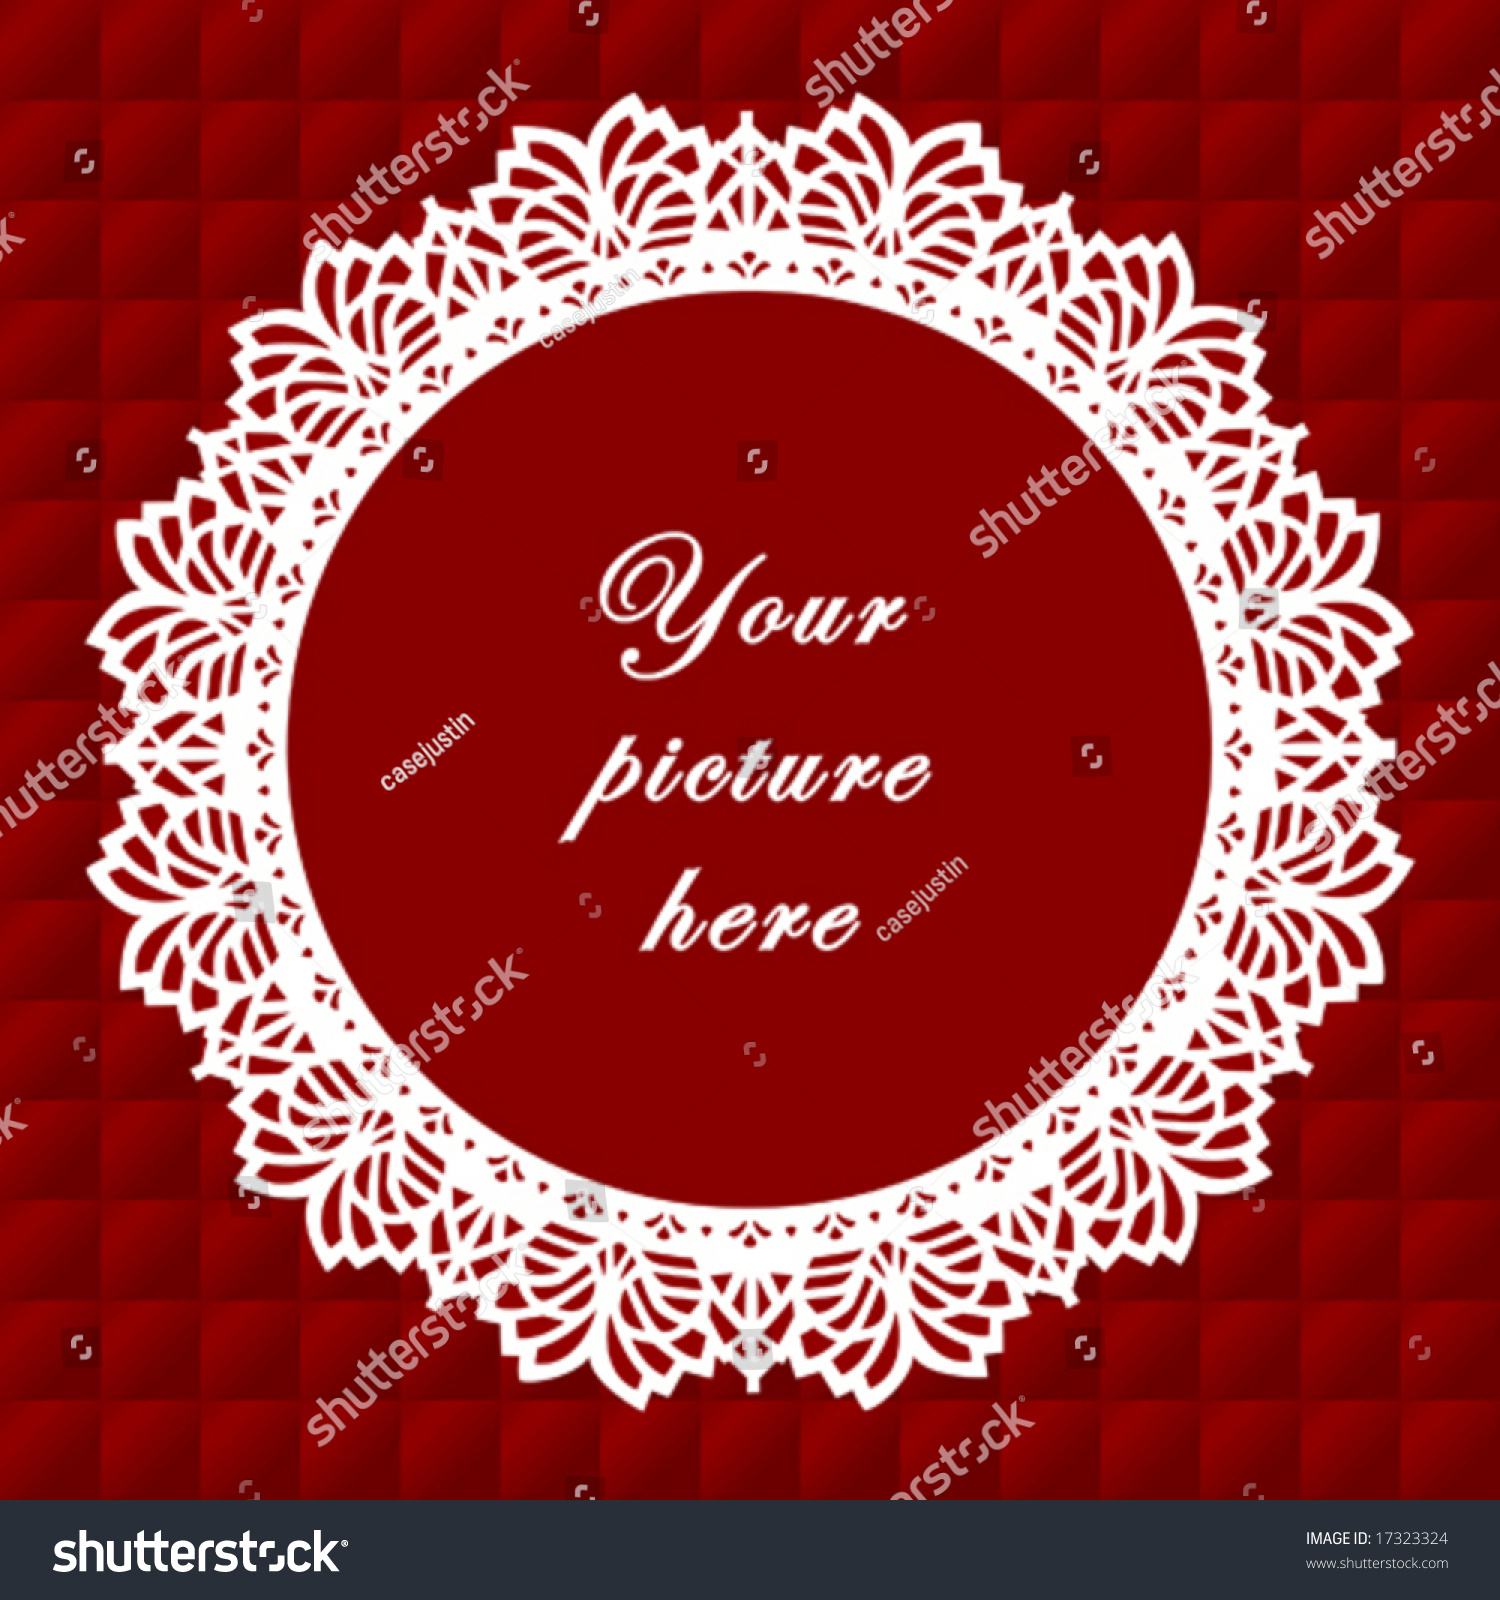 Lace Frame Vintage Doily Border Round Stock Vector (Royalty Free ...